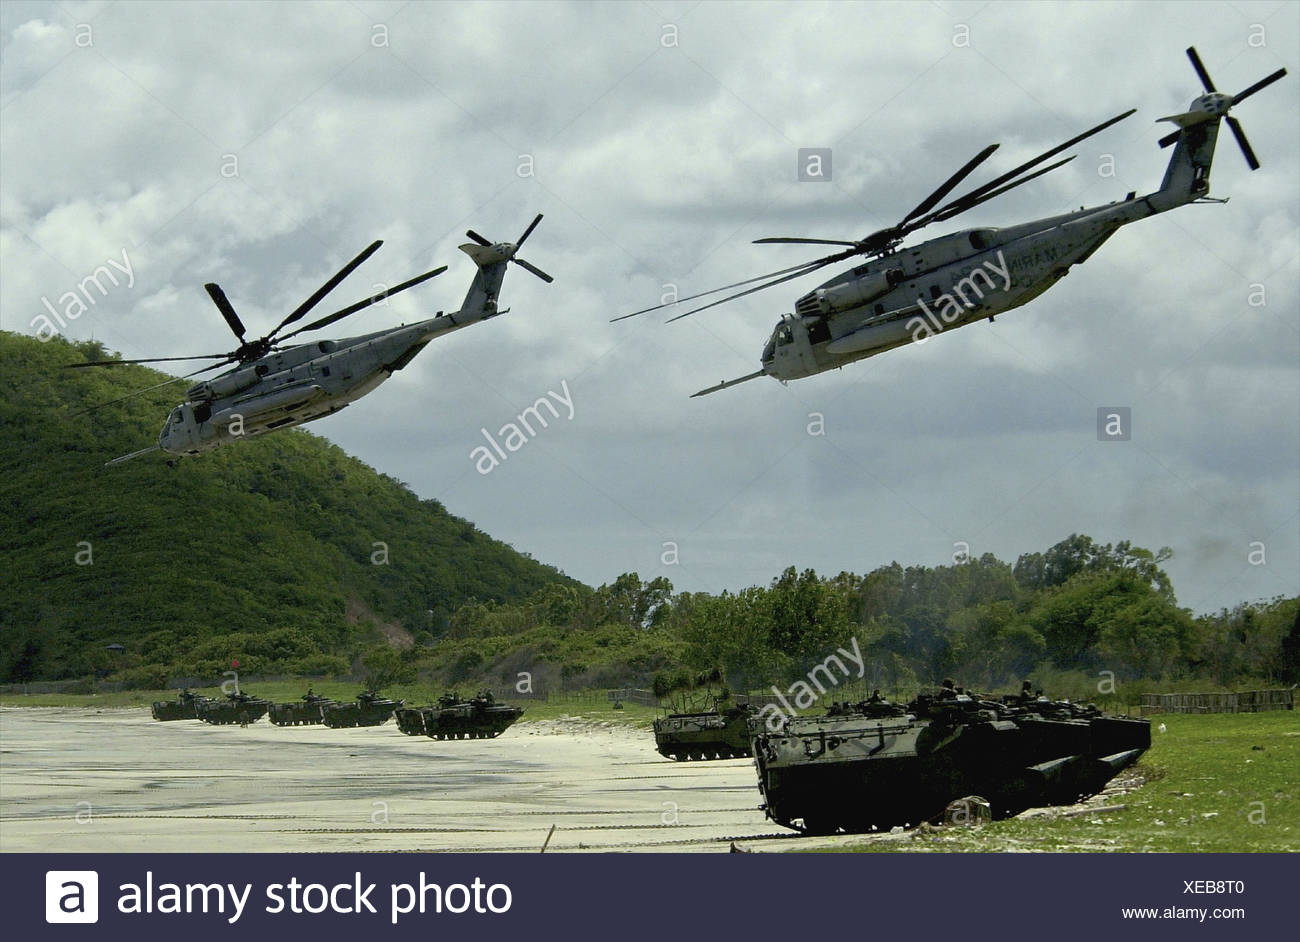 Helicopters fly over while amphibious vehicles land on a Thai beach during an assault demonstration Stock Photo